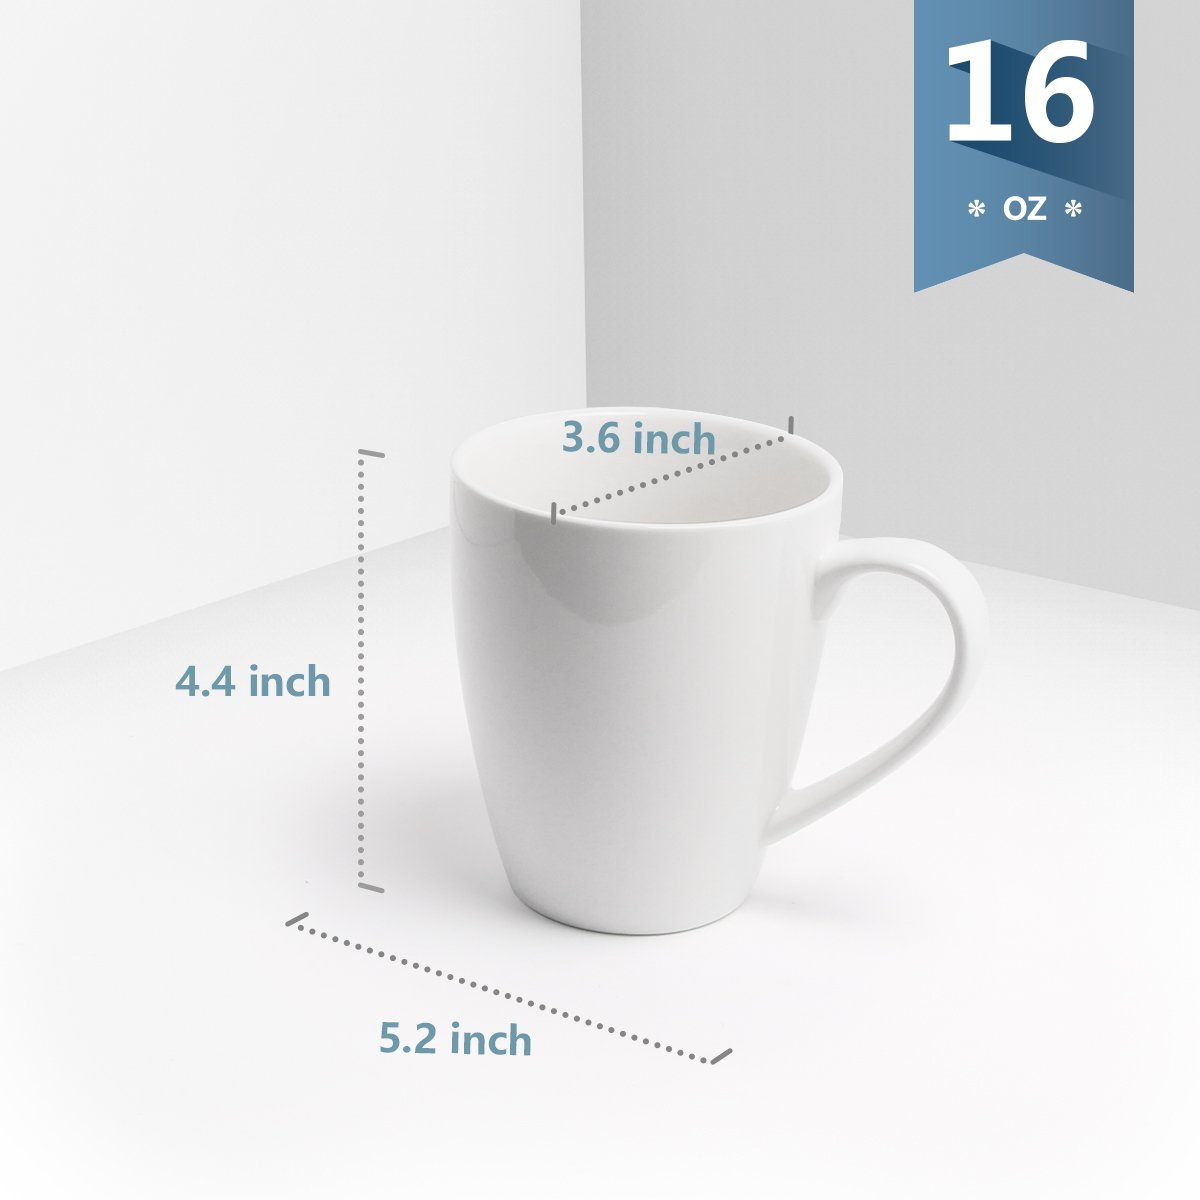 Sweese 6201 Porcelain Mugs - 16 Ounce for Coffee, Tea, Cocoa, Set of 6, White by Sweese (Image #4)